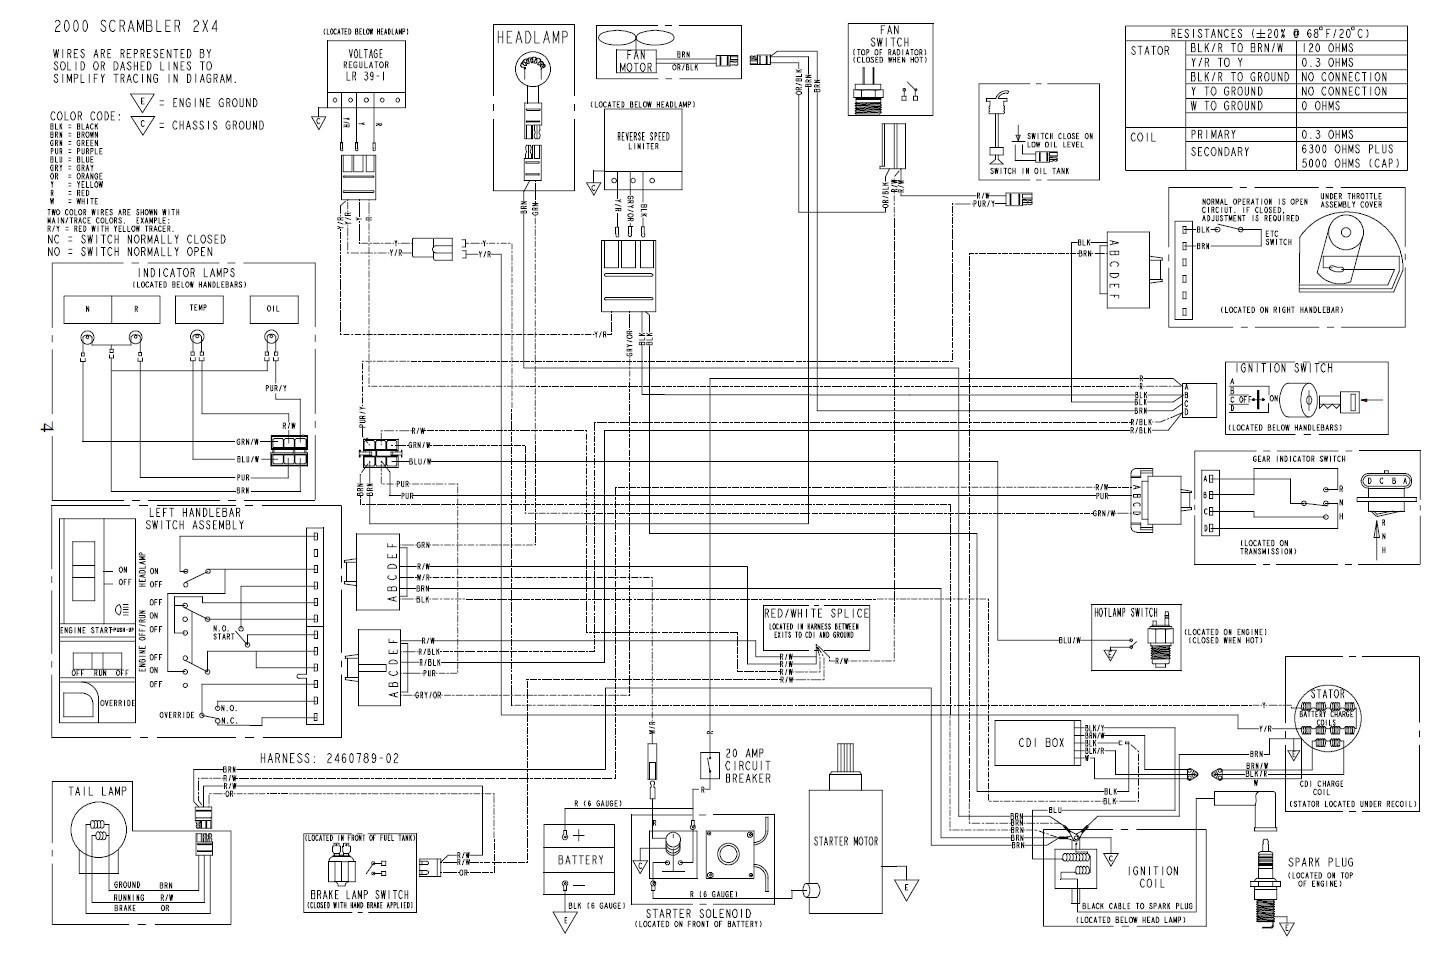 2004 Polaris 90 Wiring Diagram Flat Wiring Diagram For Electrical Piooner Radios Wiringdol Jeanjaures37 Fr